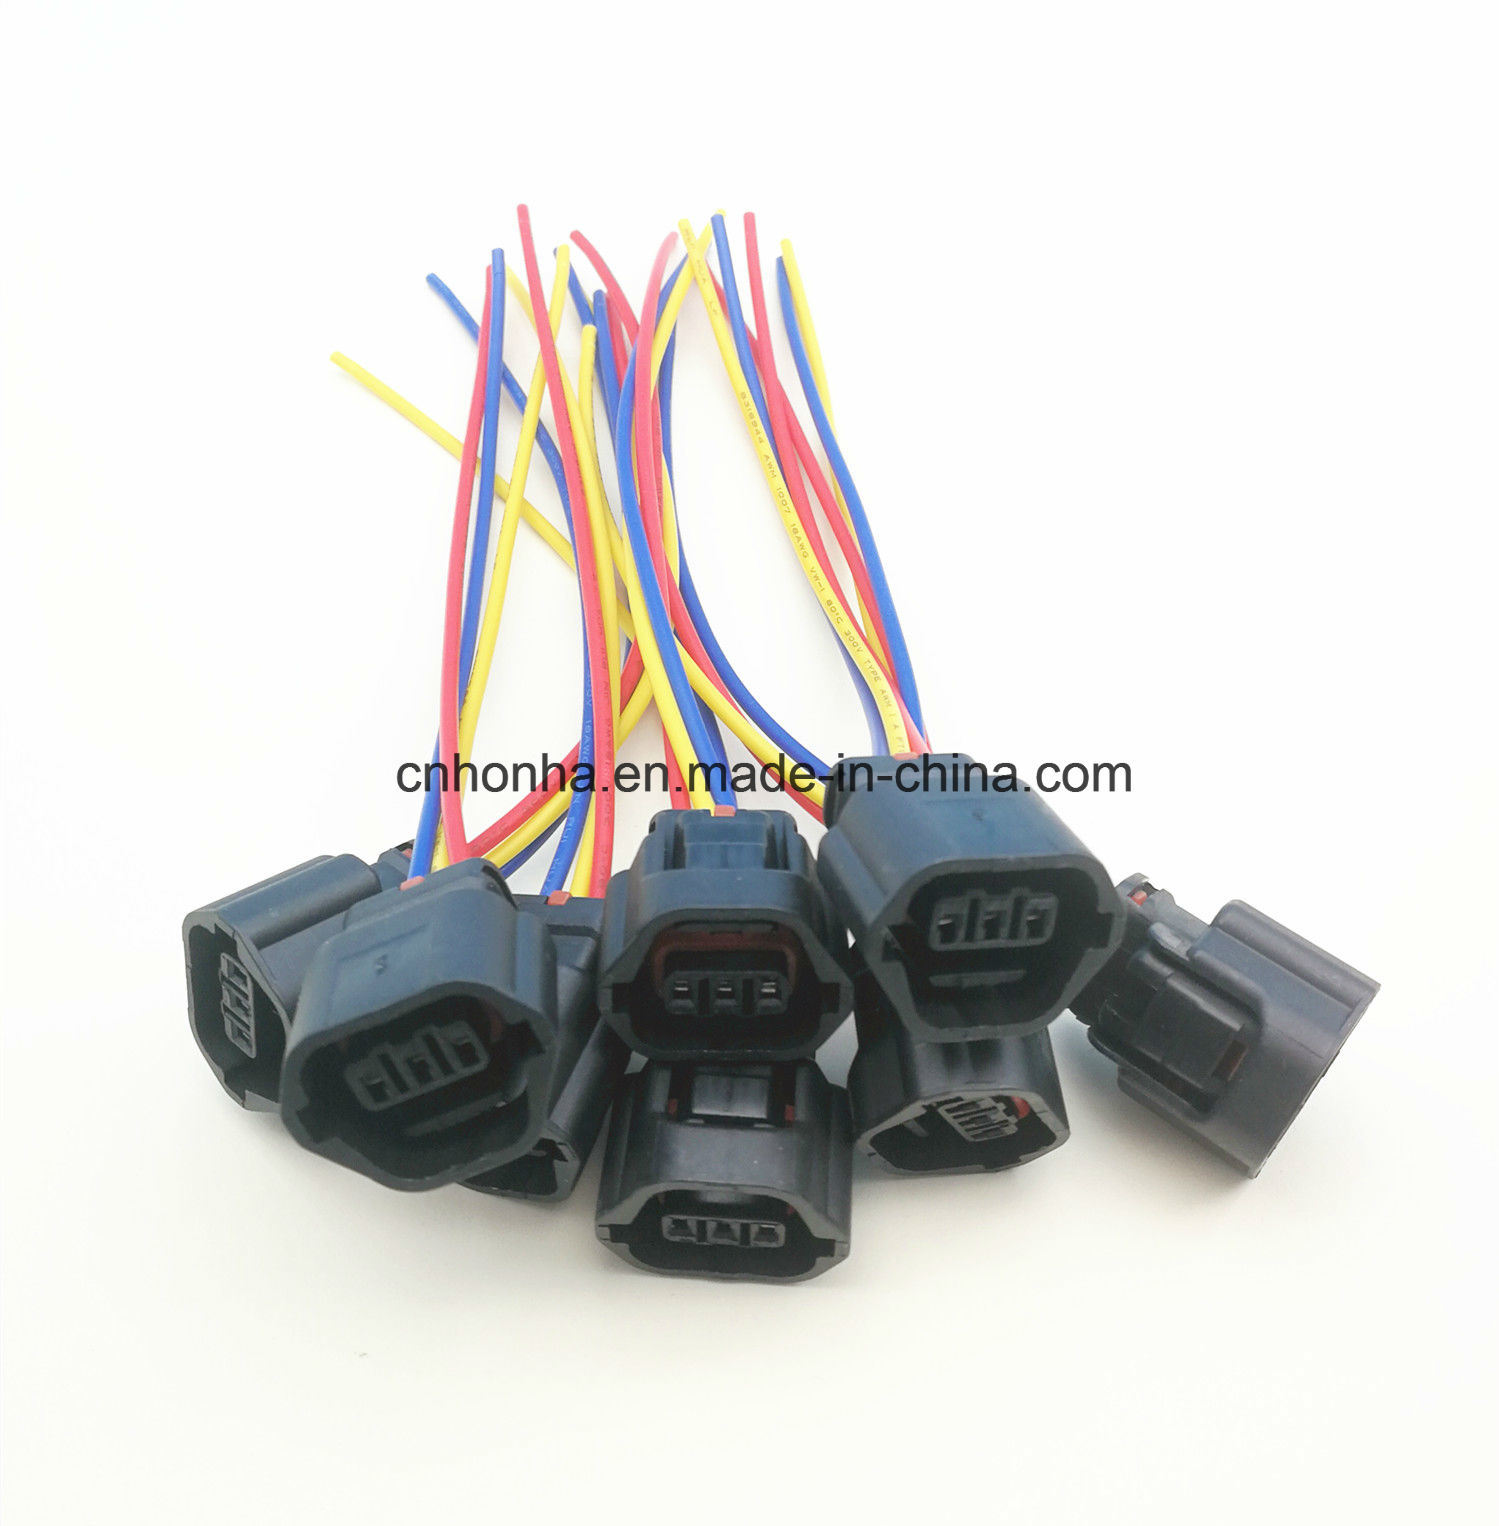 hight resolution of china 7283 8730 30 yazaki 3 pin female connector waterproof auto wire harness china cable harness auto wire harness